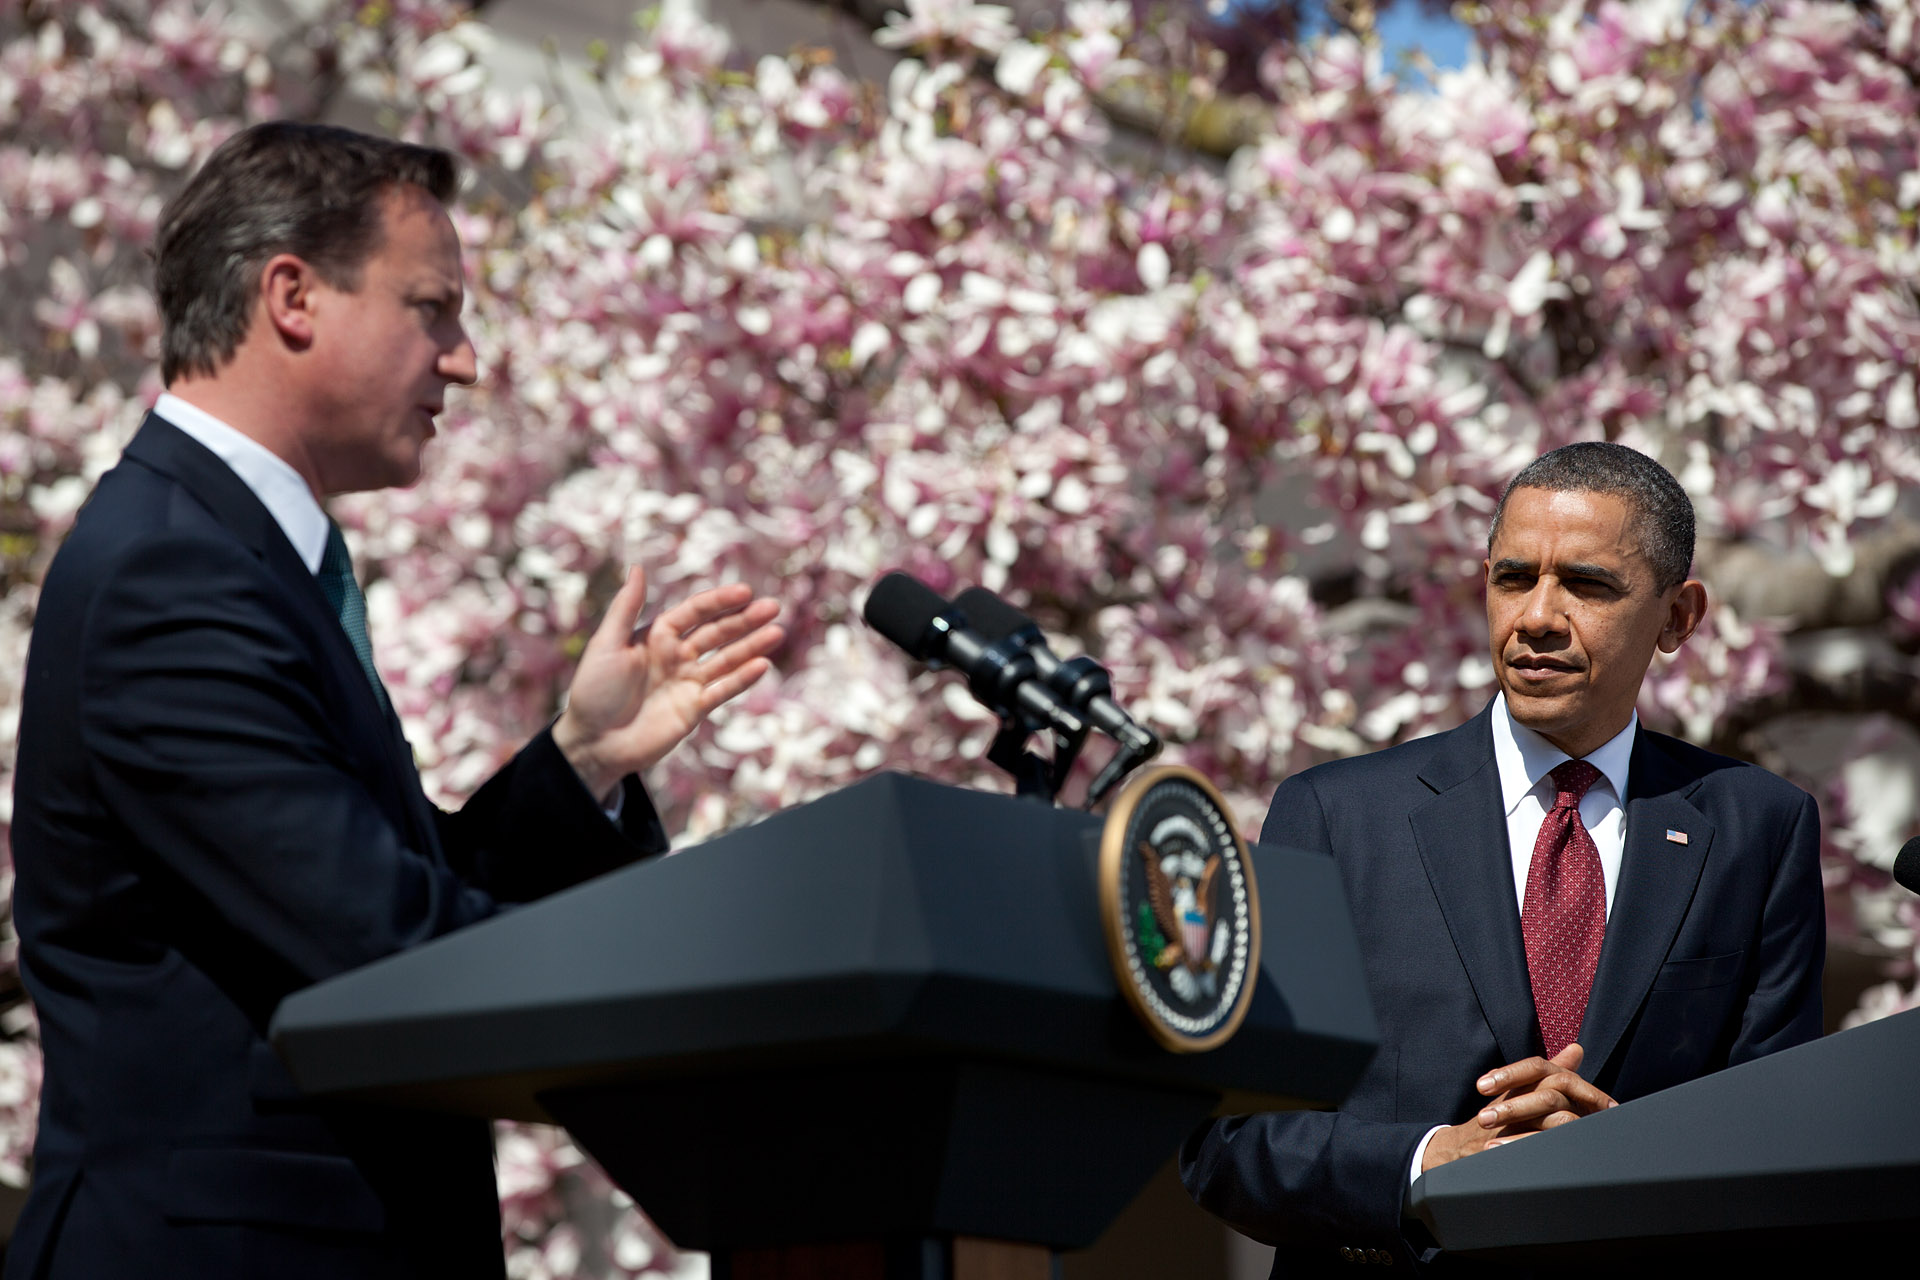 President Barack Obama and Prime Minister David Cameron of the United Kingdom hold a press conference (March 14, 2012)